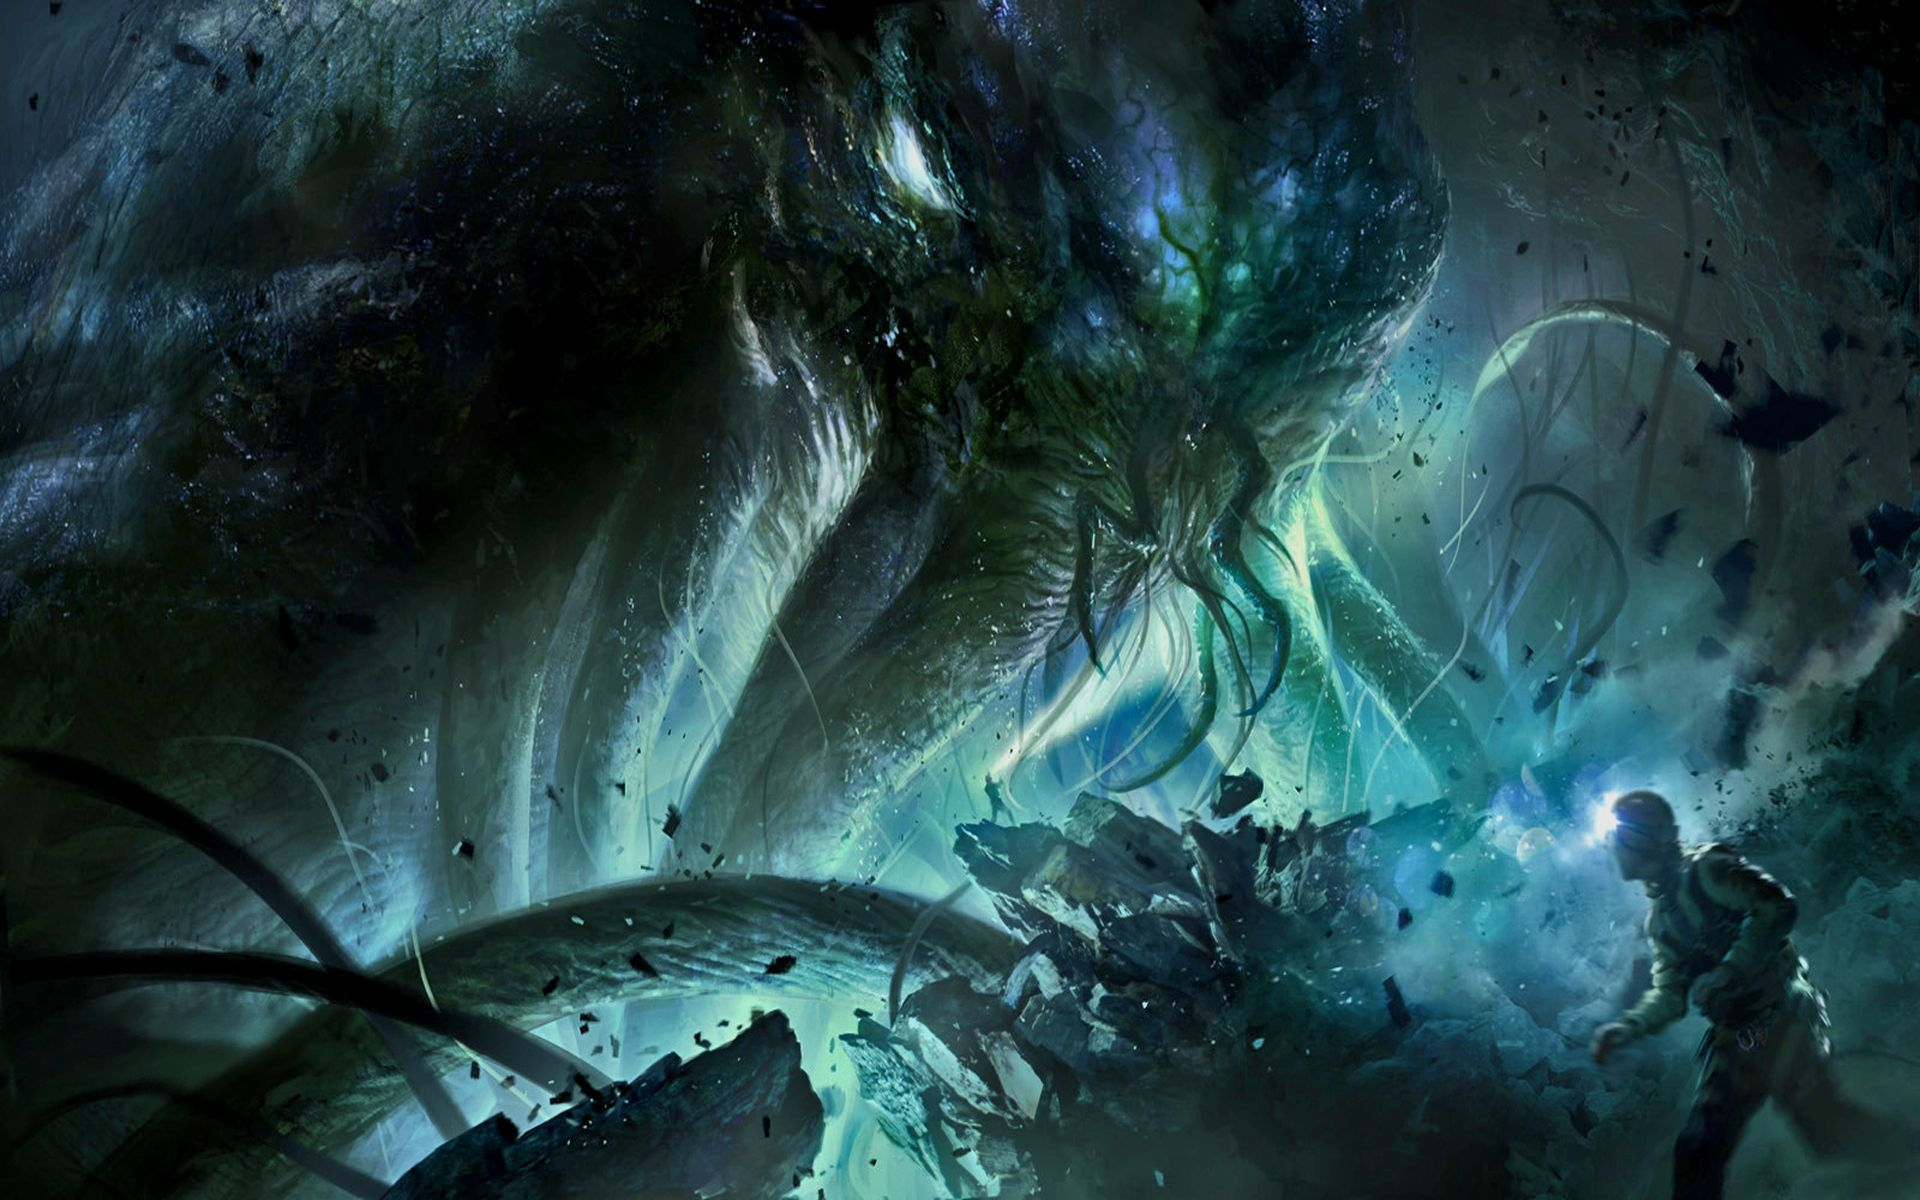 Cthulhu Hd Wallpapers Backgrounds Wallpaper Page 1920x1200